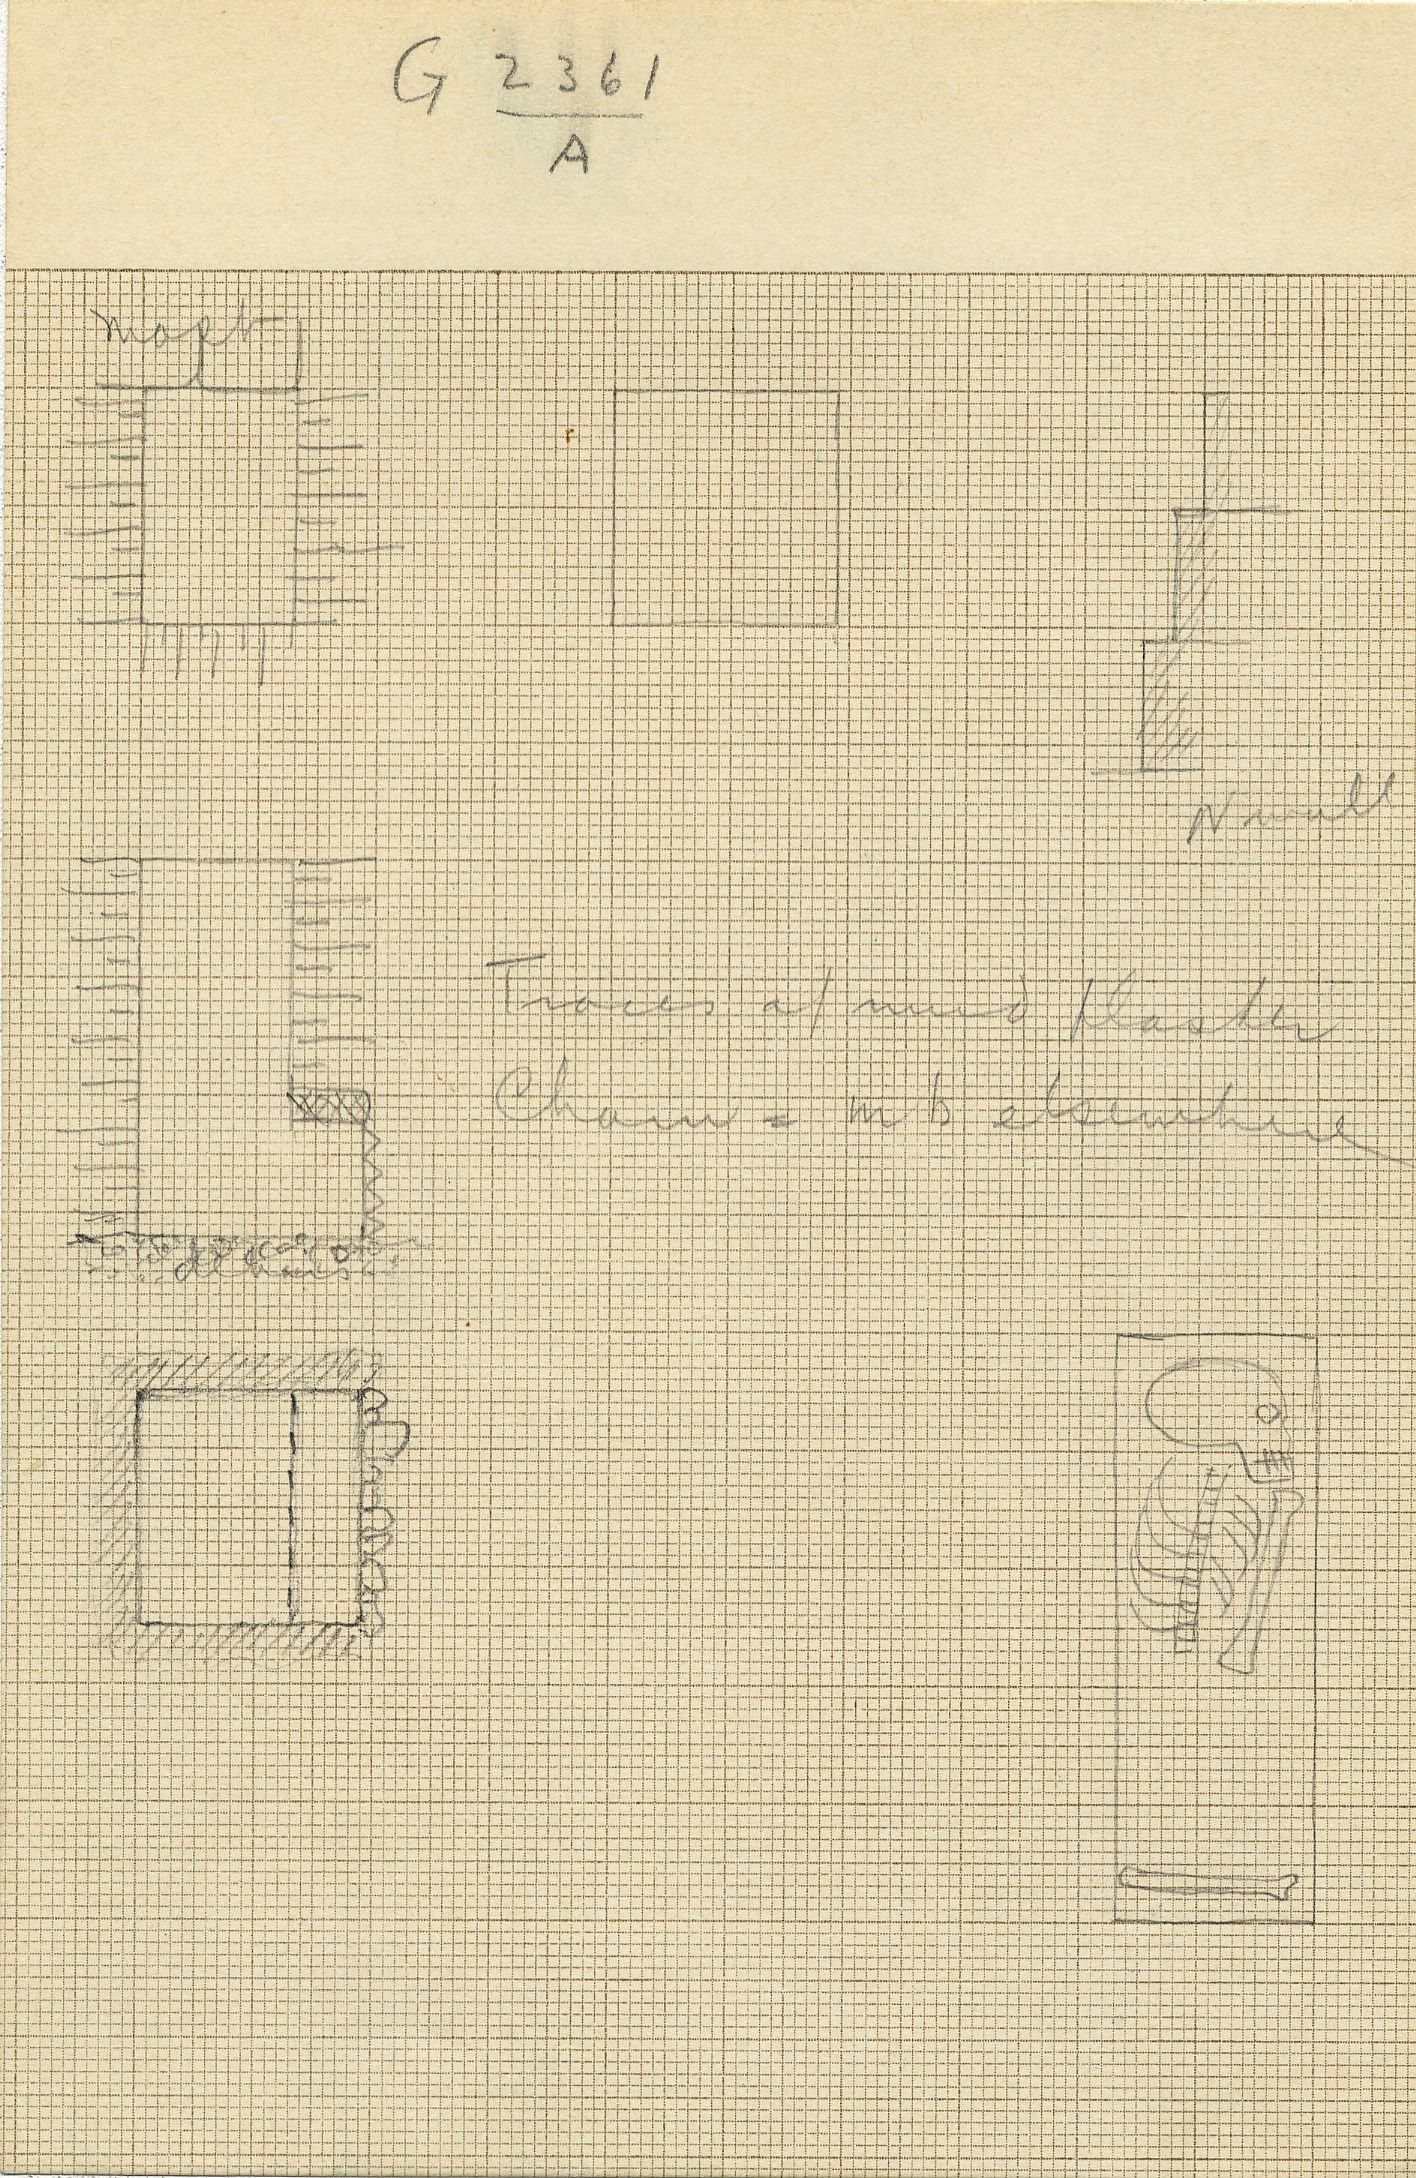 Maps and plans: G 2361, Shaft A